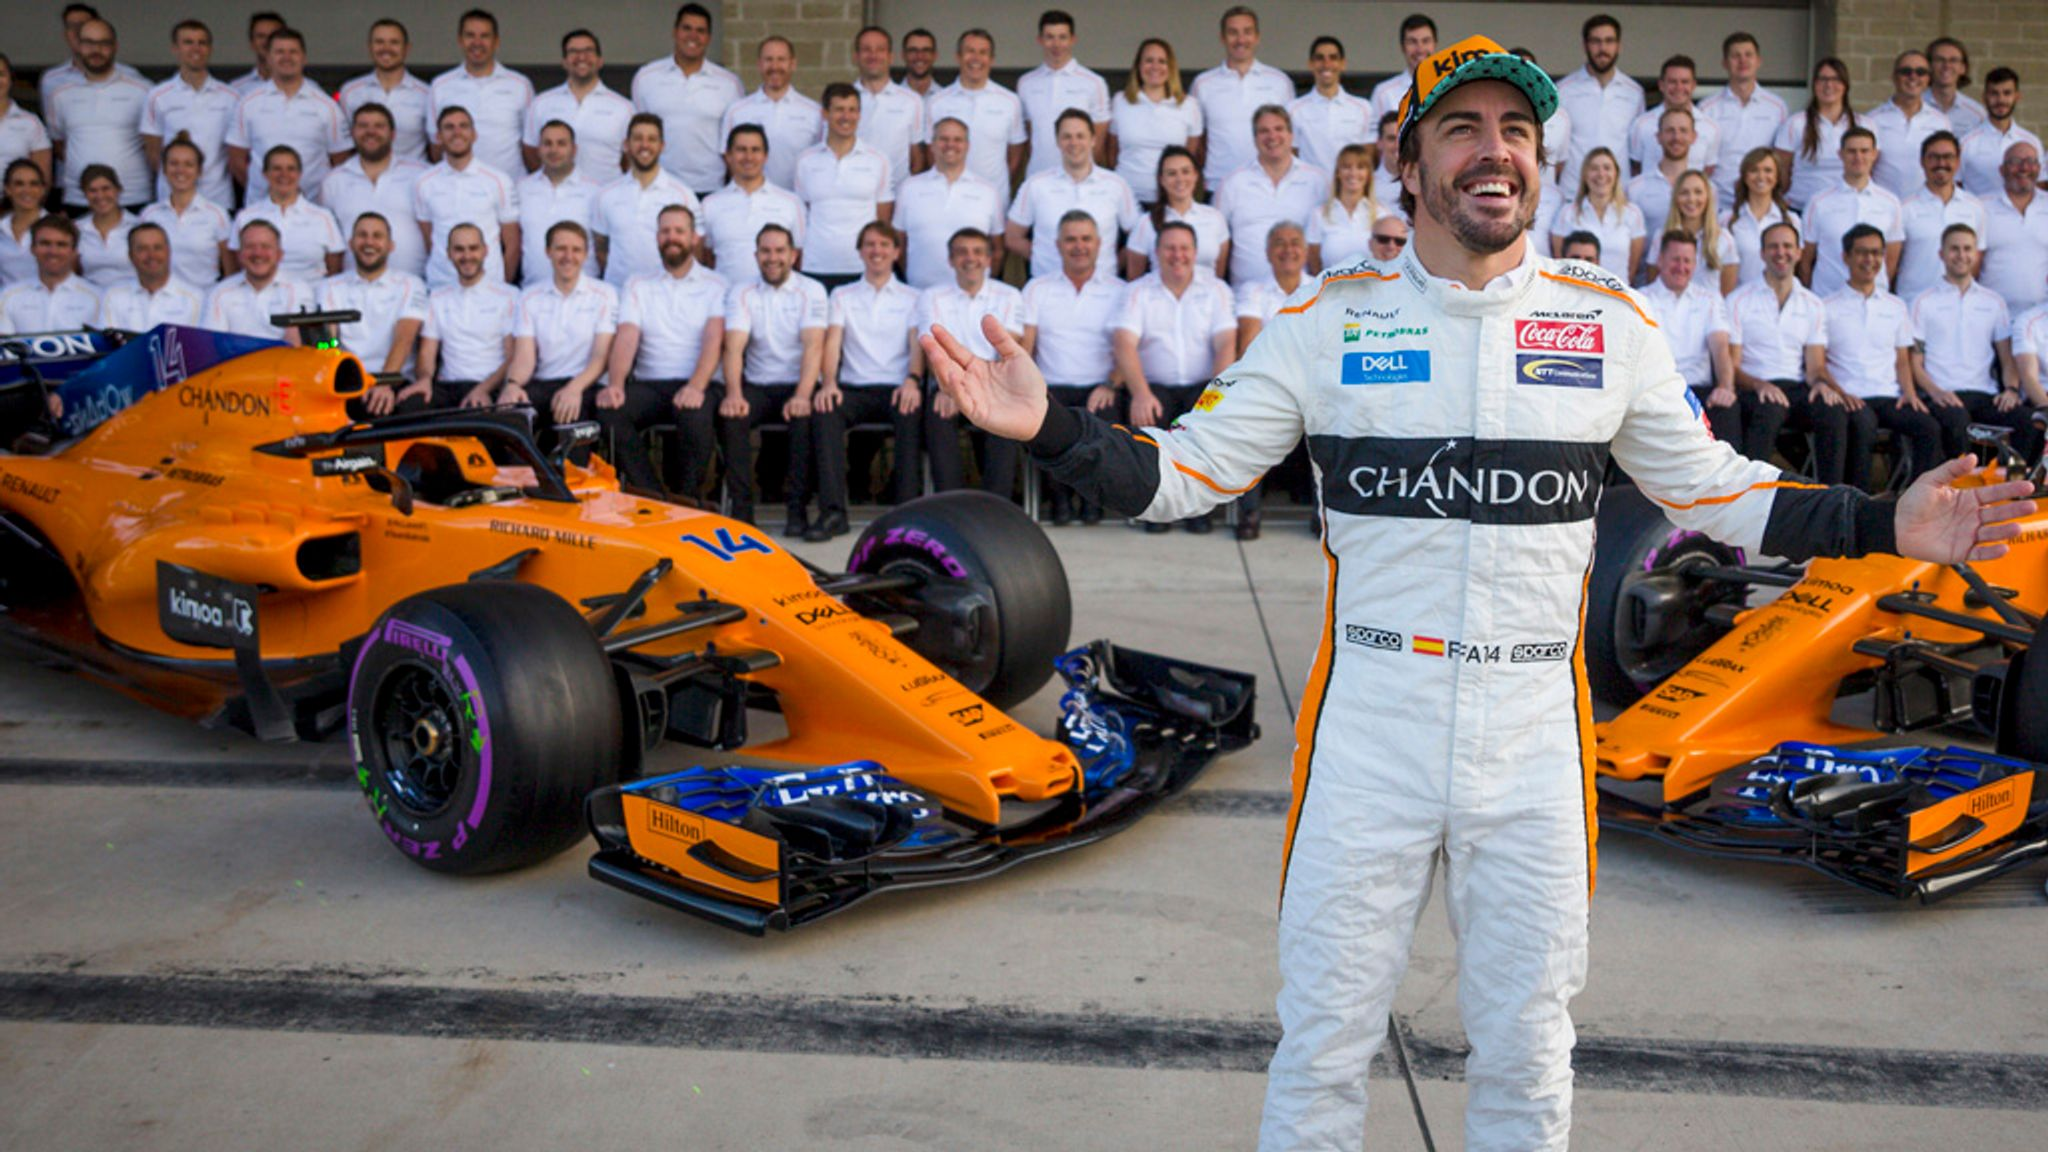 Fernando Alonso And Mclaren S 2019 Indy 500 Plans F1 News